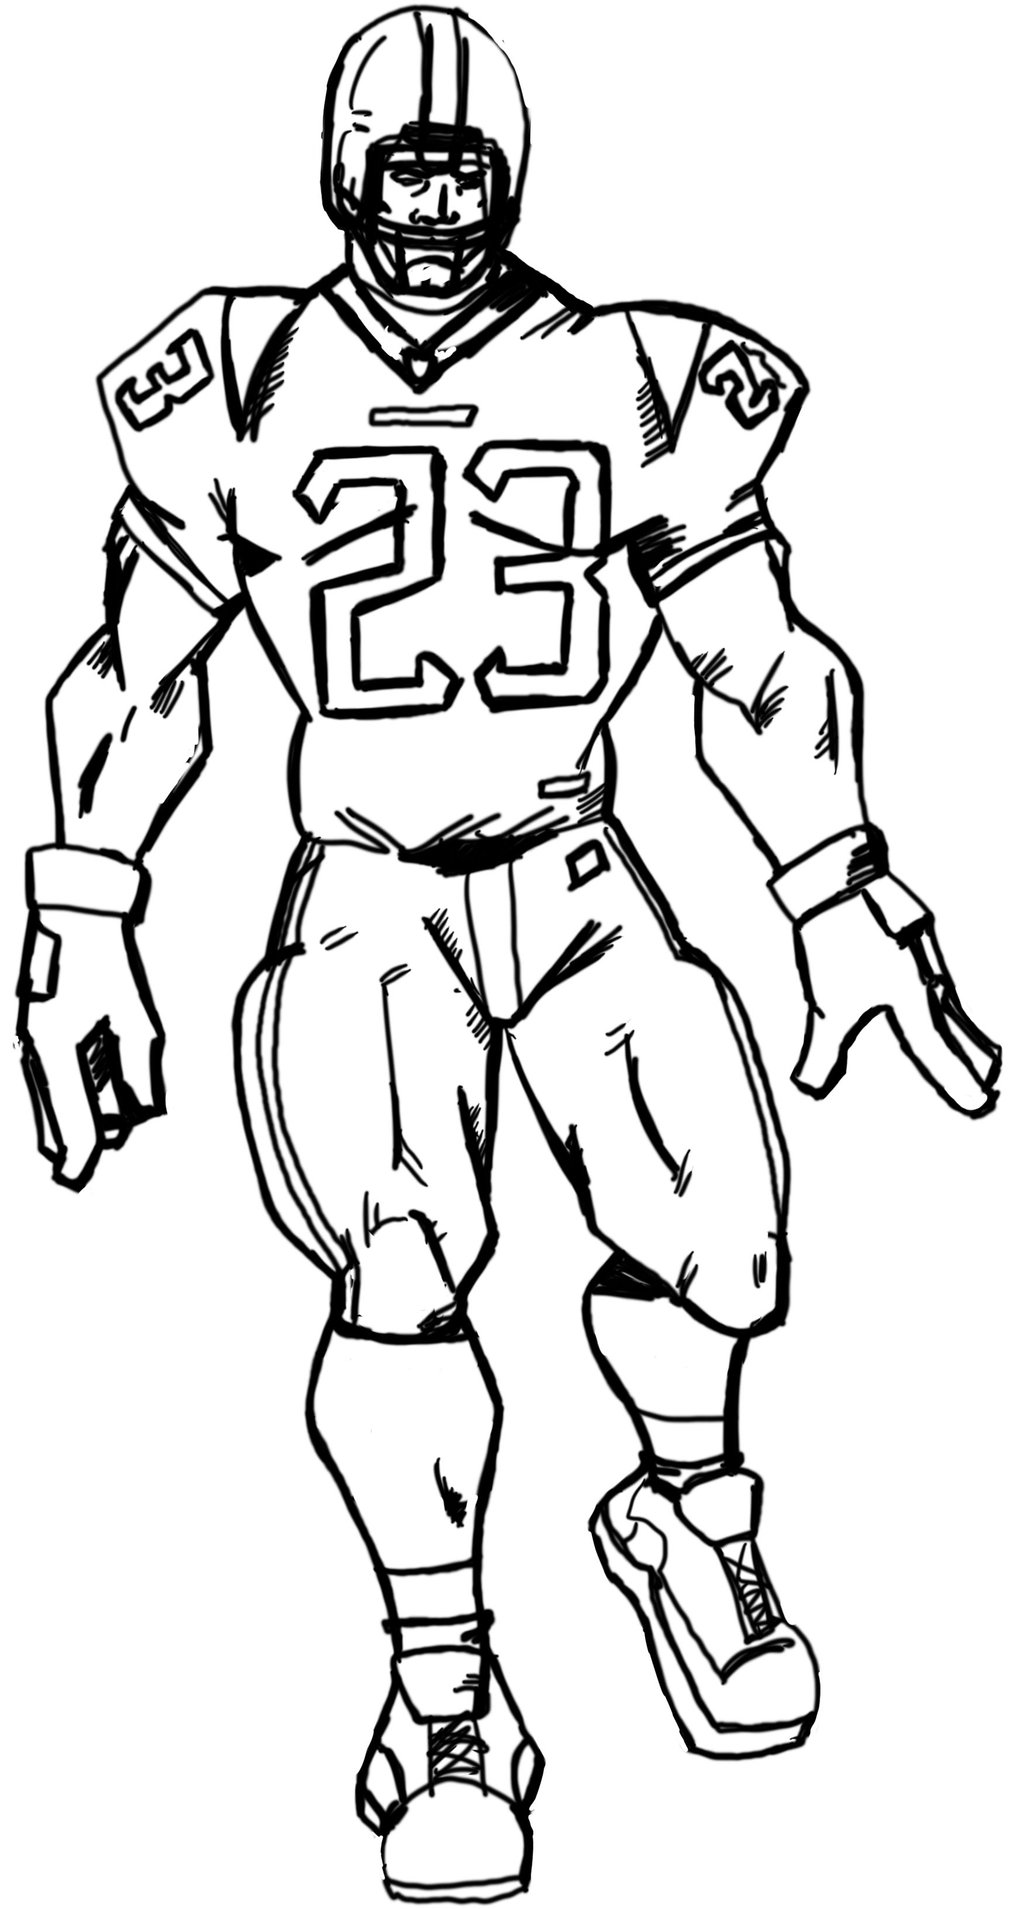 1024x1909 Cool Football Drawings Group